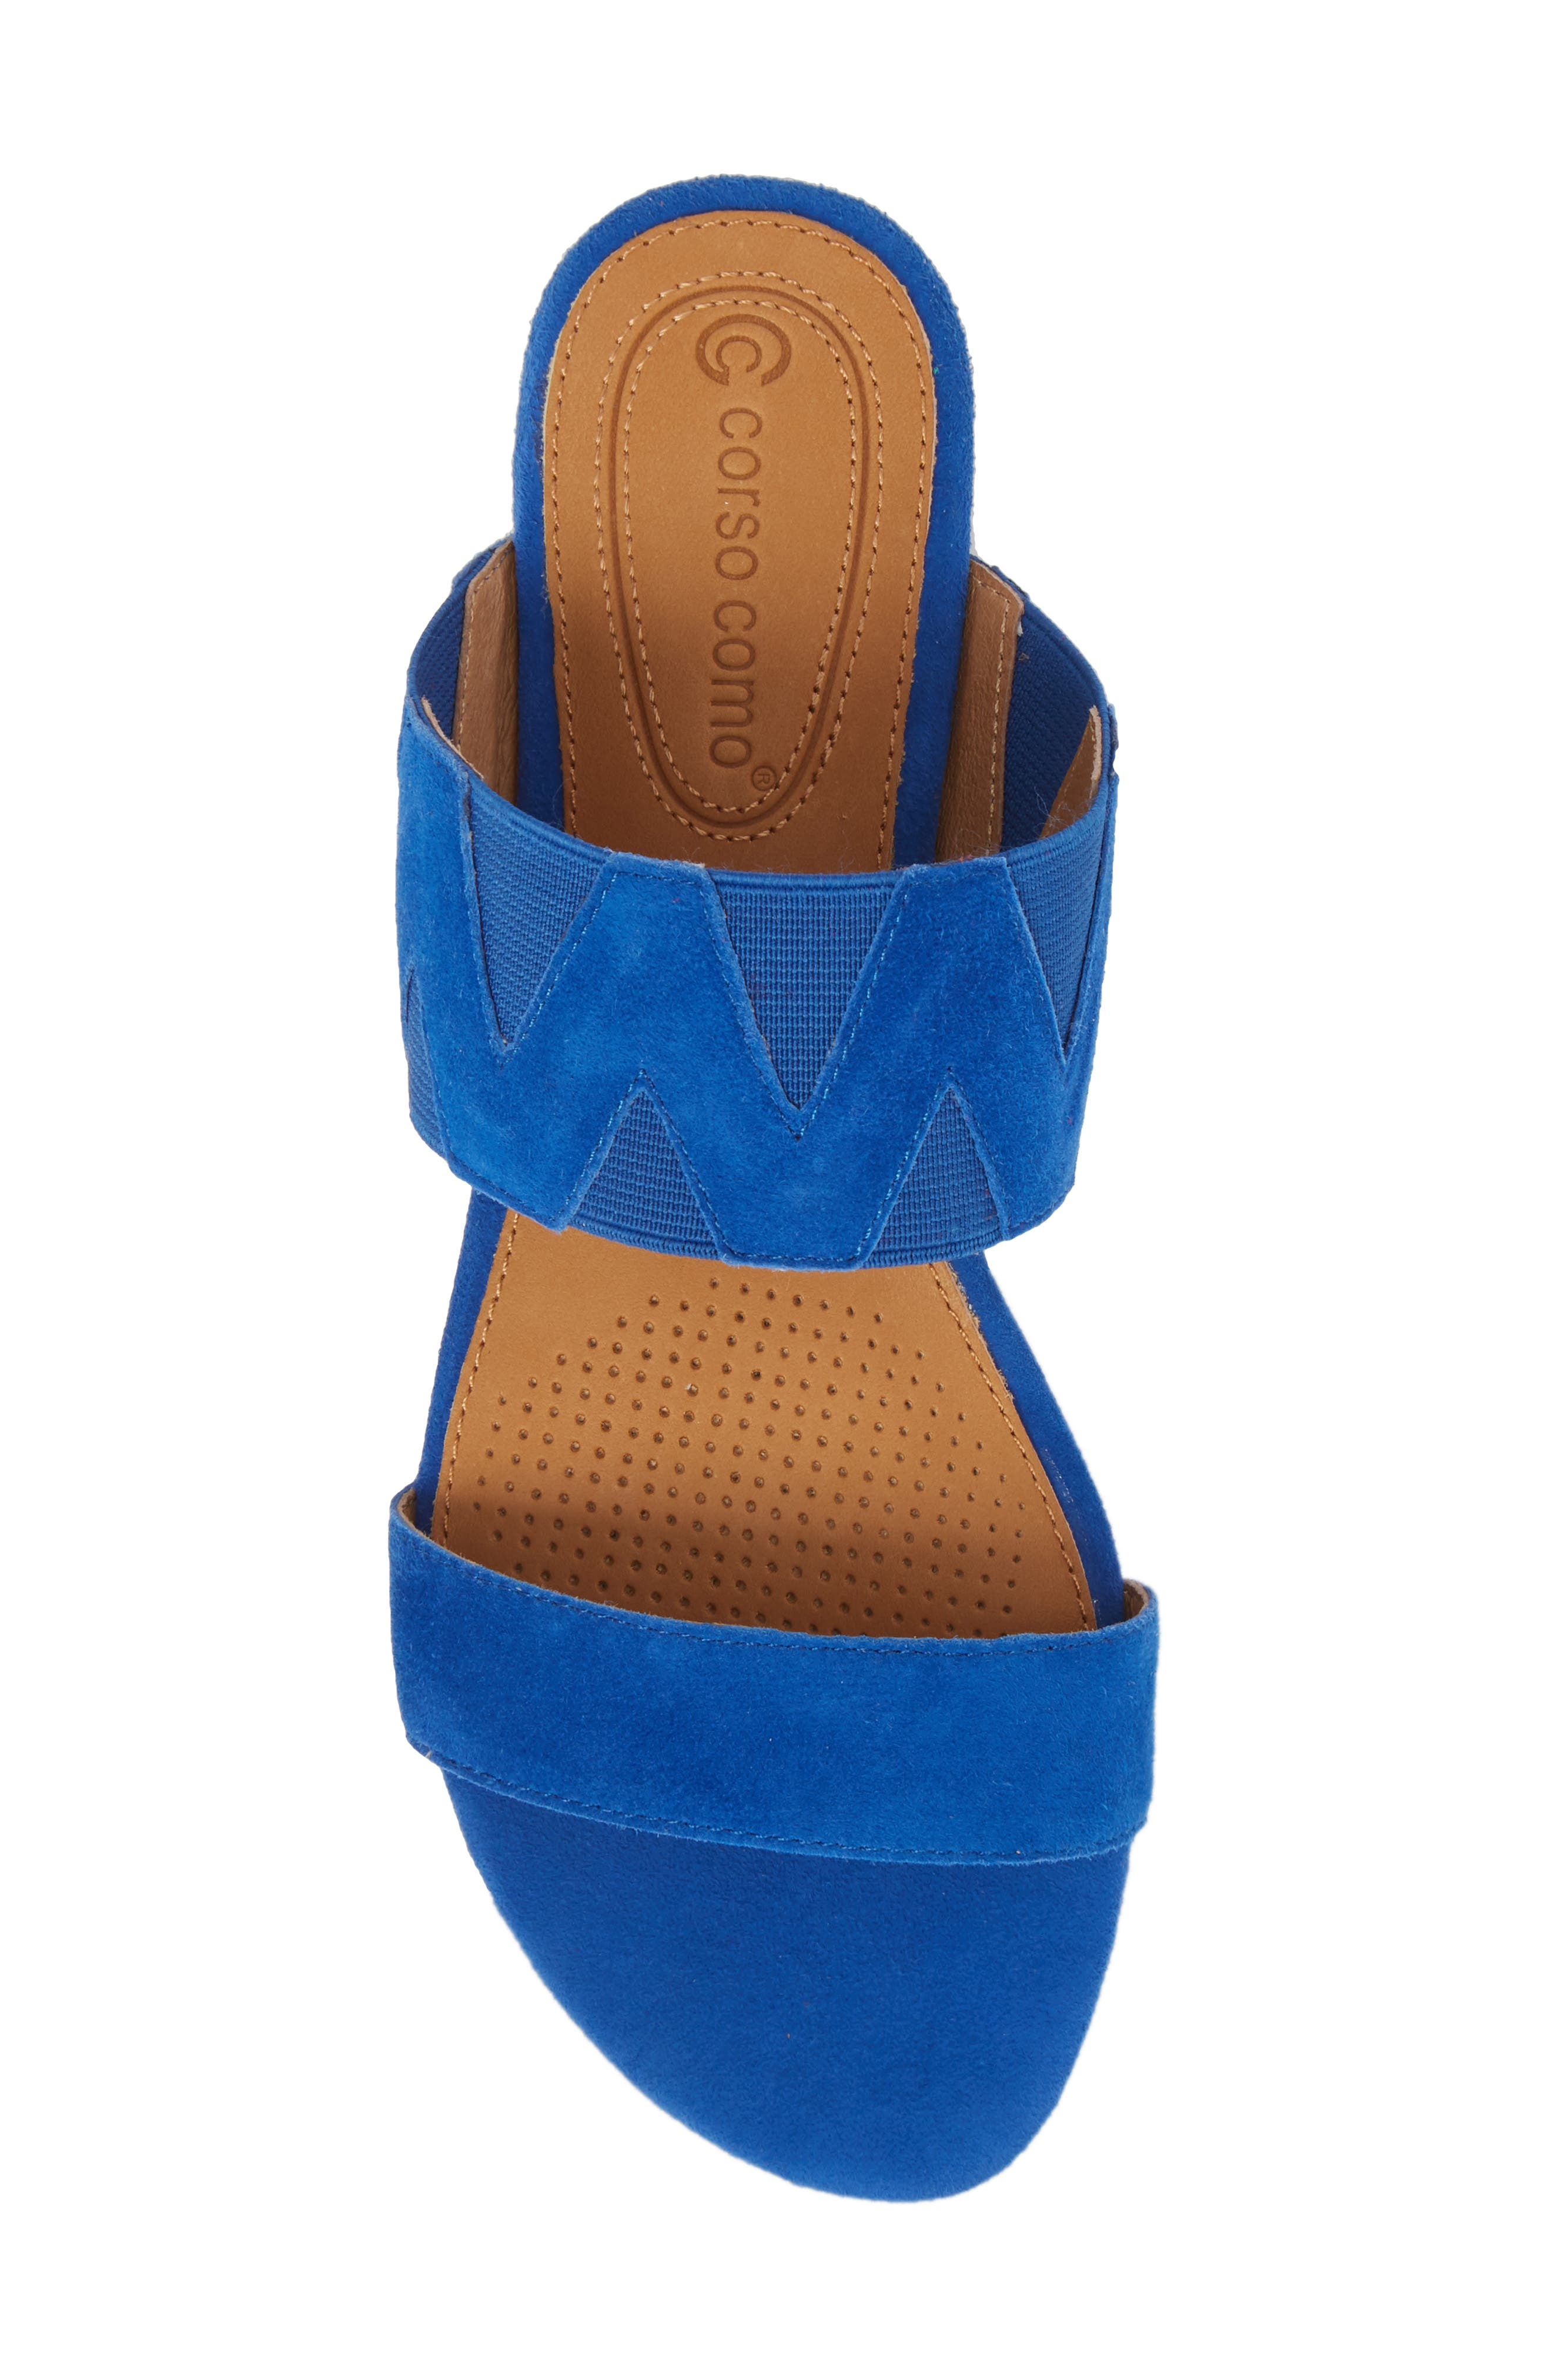 Vickee Double Band Sandal,                             Alternate thumbnail 5, color,                             Royal Blue Leather